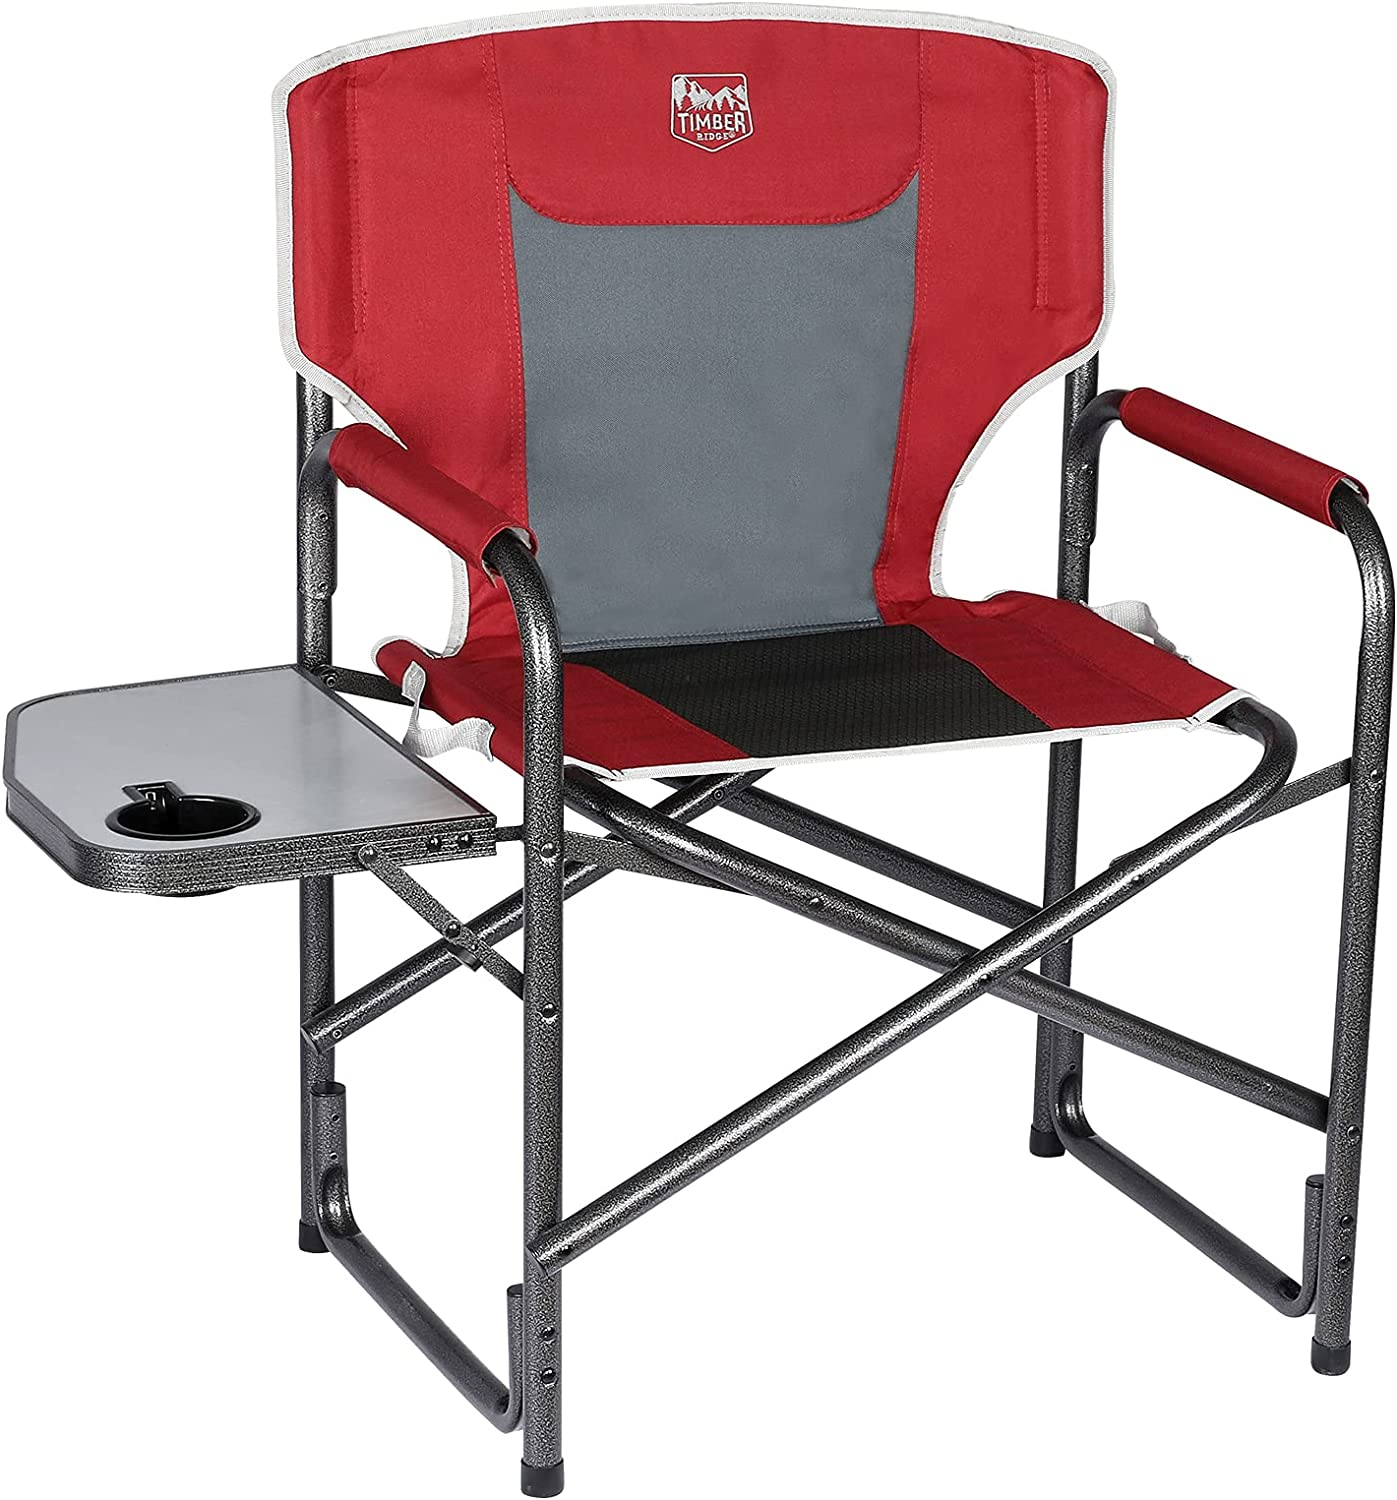 TIMBER RIDGE Portable Outdoor Camping Folding Director's Chair with Side Table Lightweight Aluminum Frame-Supports 300lbs(Red)